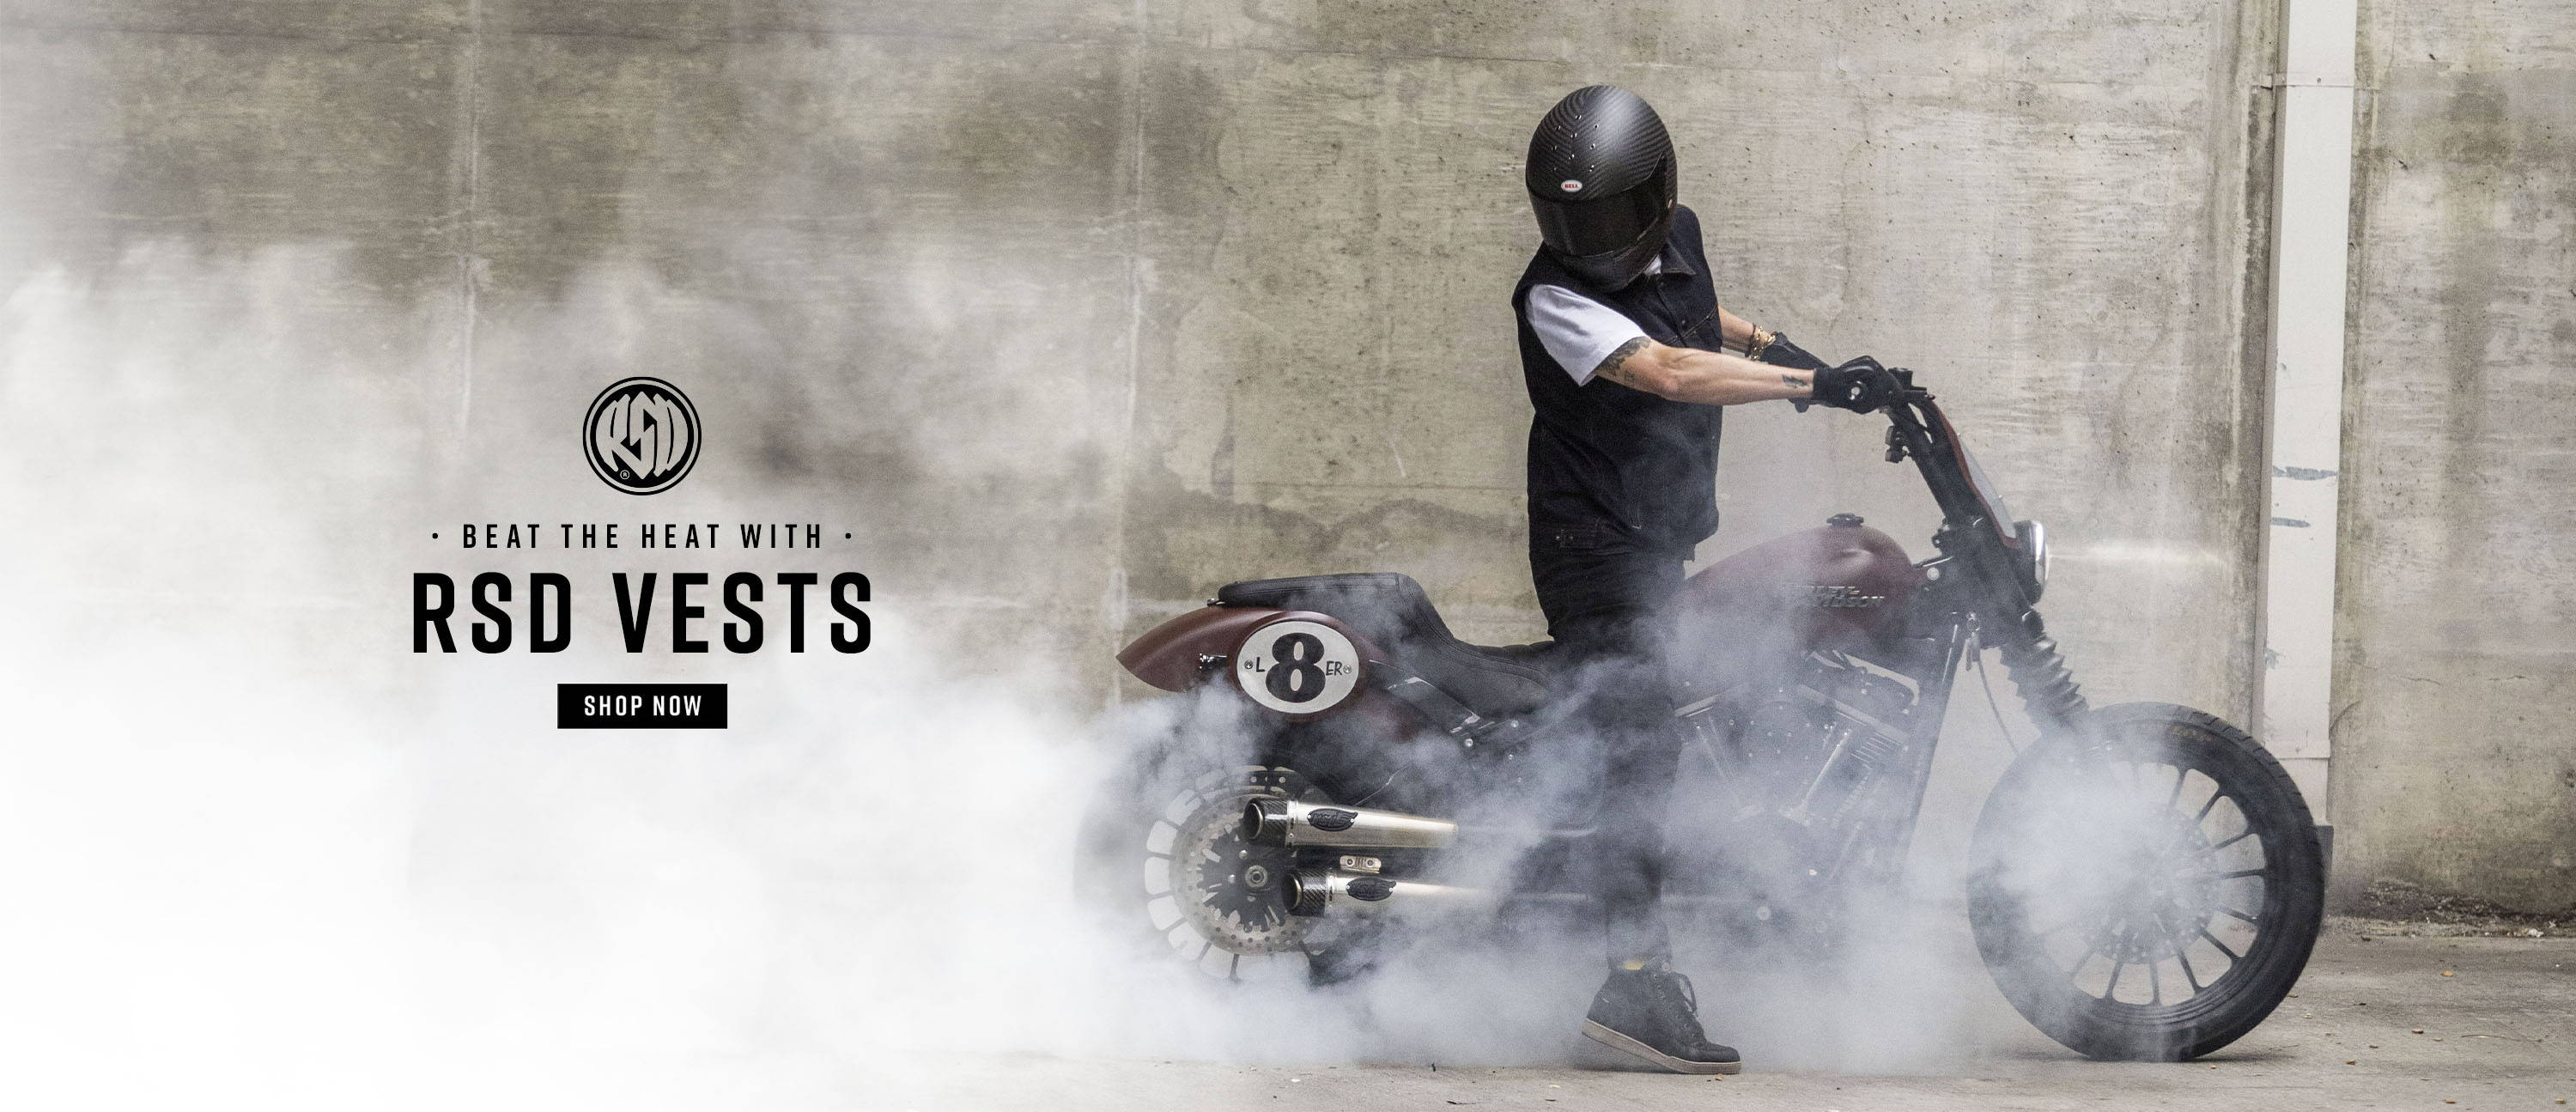 Motorcycle Vests for summer riding